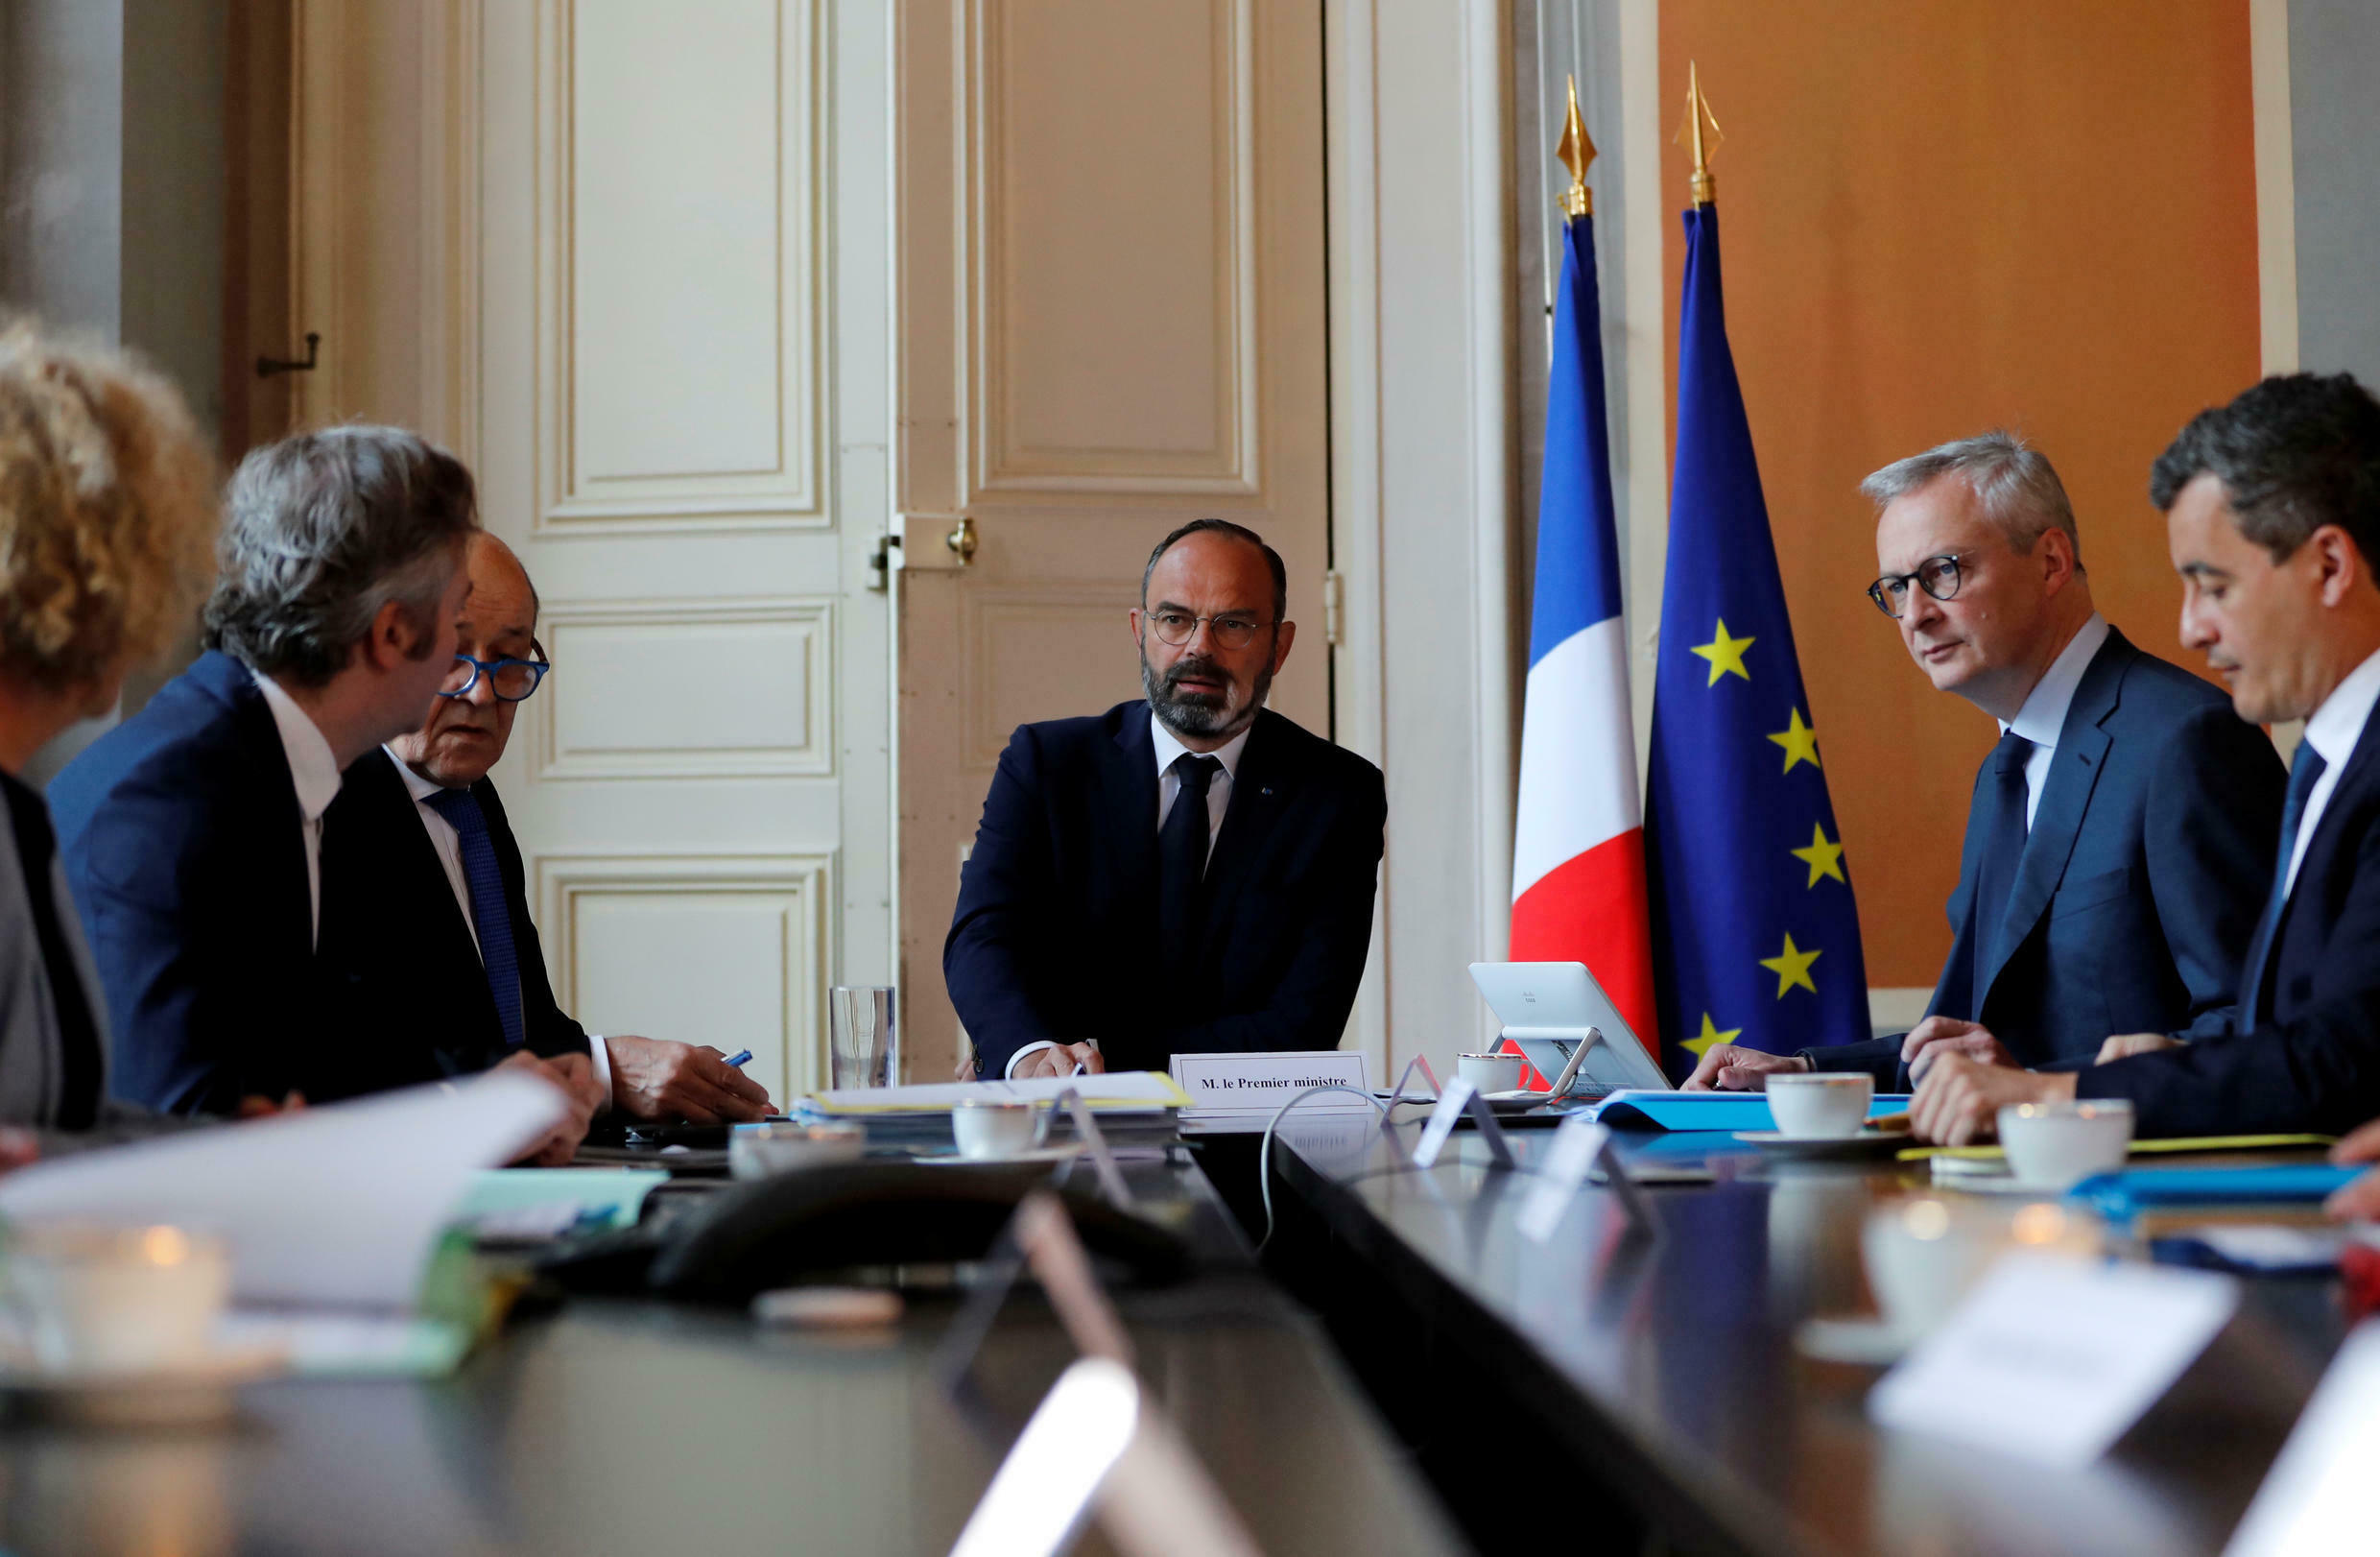 French Prime Minister Edouard Philippe (middle), with French Minister of Economy and Finance Bruno Le Maire during a video conference on 14 May, 2020.